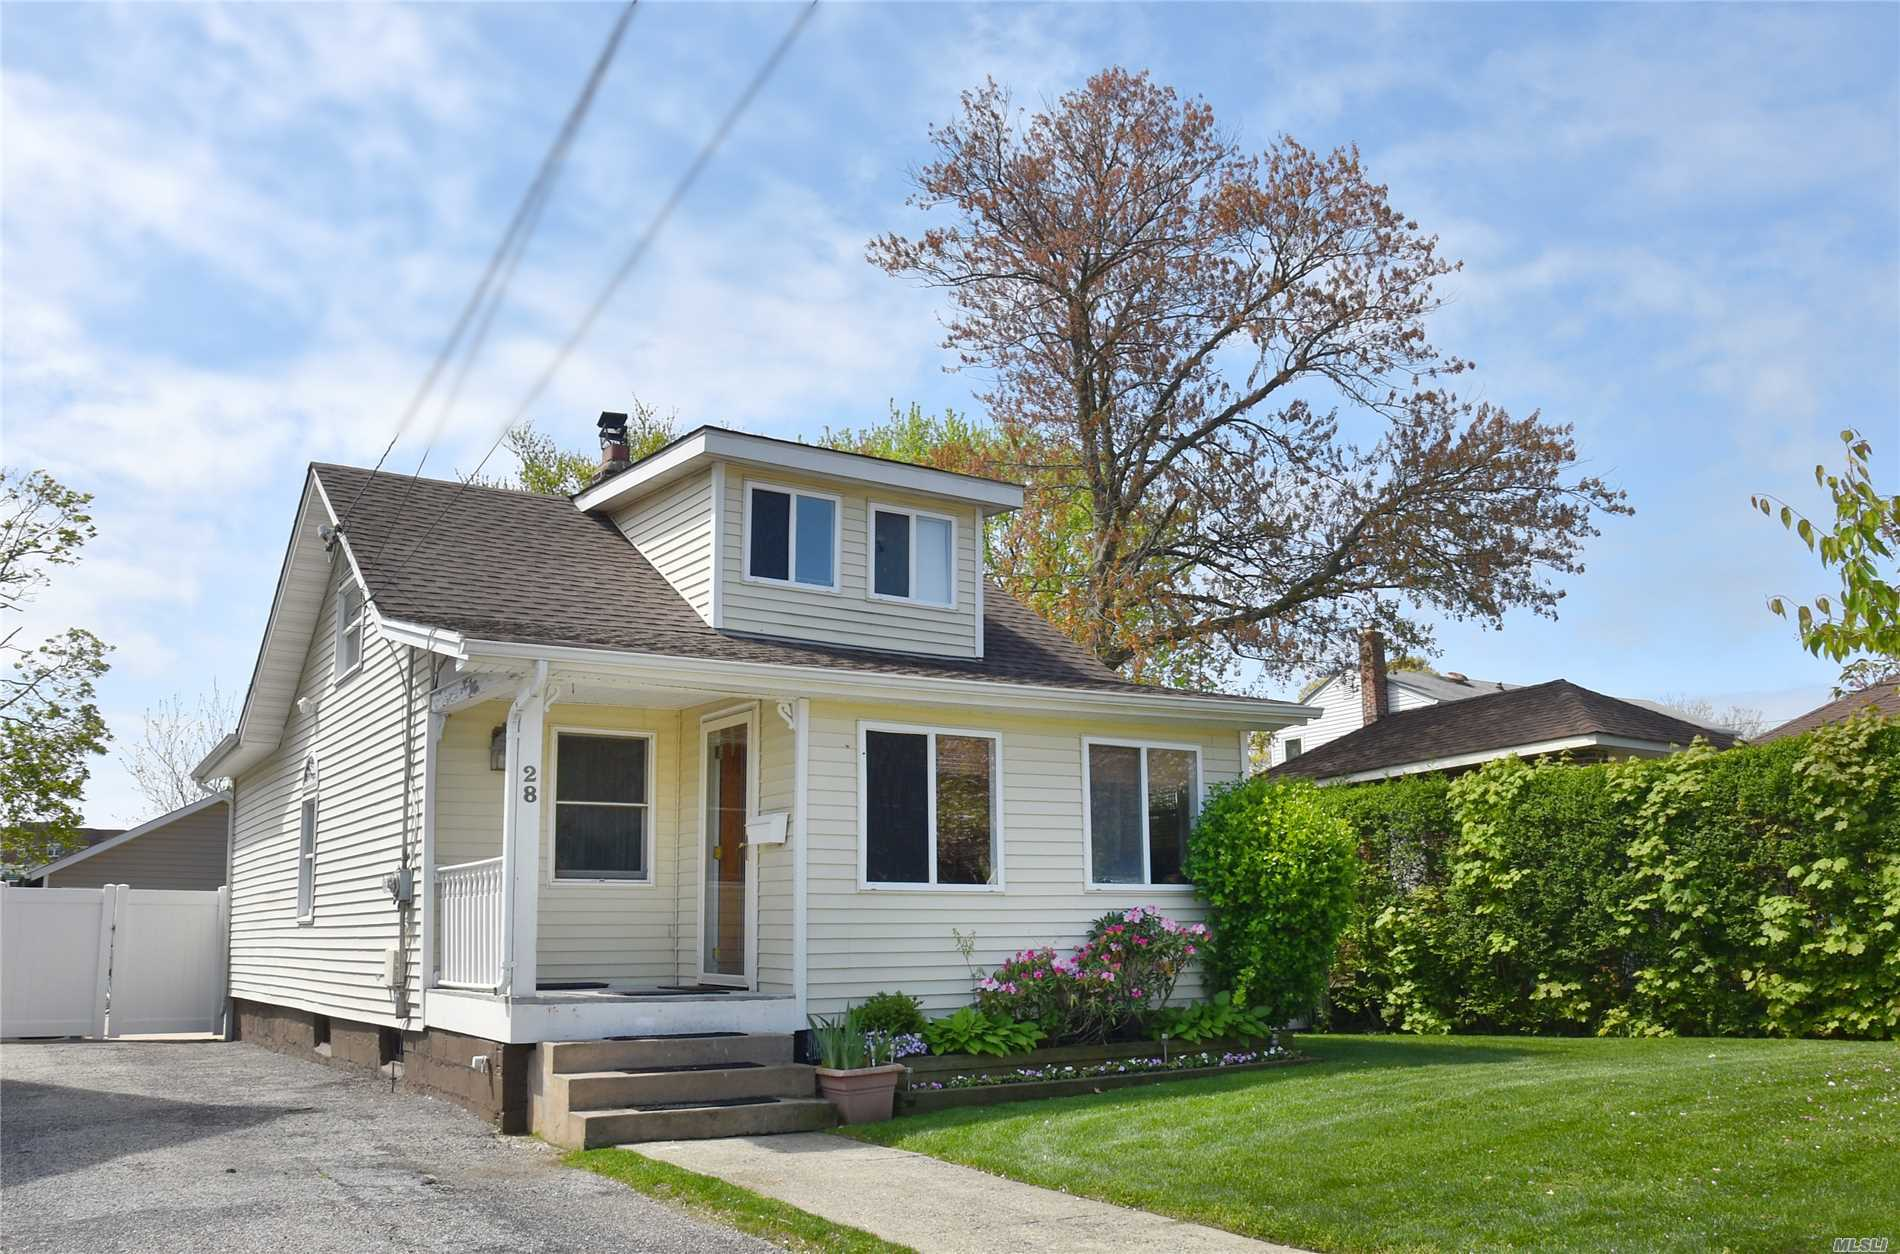 Bright, sun-filled, adorable bungalow on a spectacular over-sized 50x159 property in highly esteemed Lynbrook schools. Perfect starter home/downsize with terrific opportunity for expansion. Great location only blocks from shopping, restaurants, transportation. Great opportunity to live in the beautiful Village of Lynbrook!